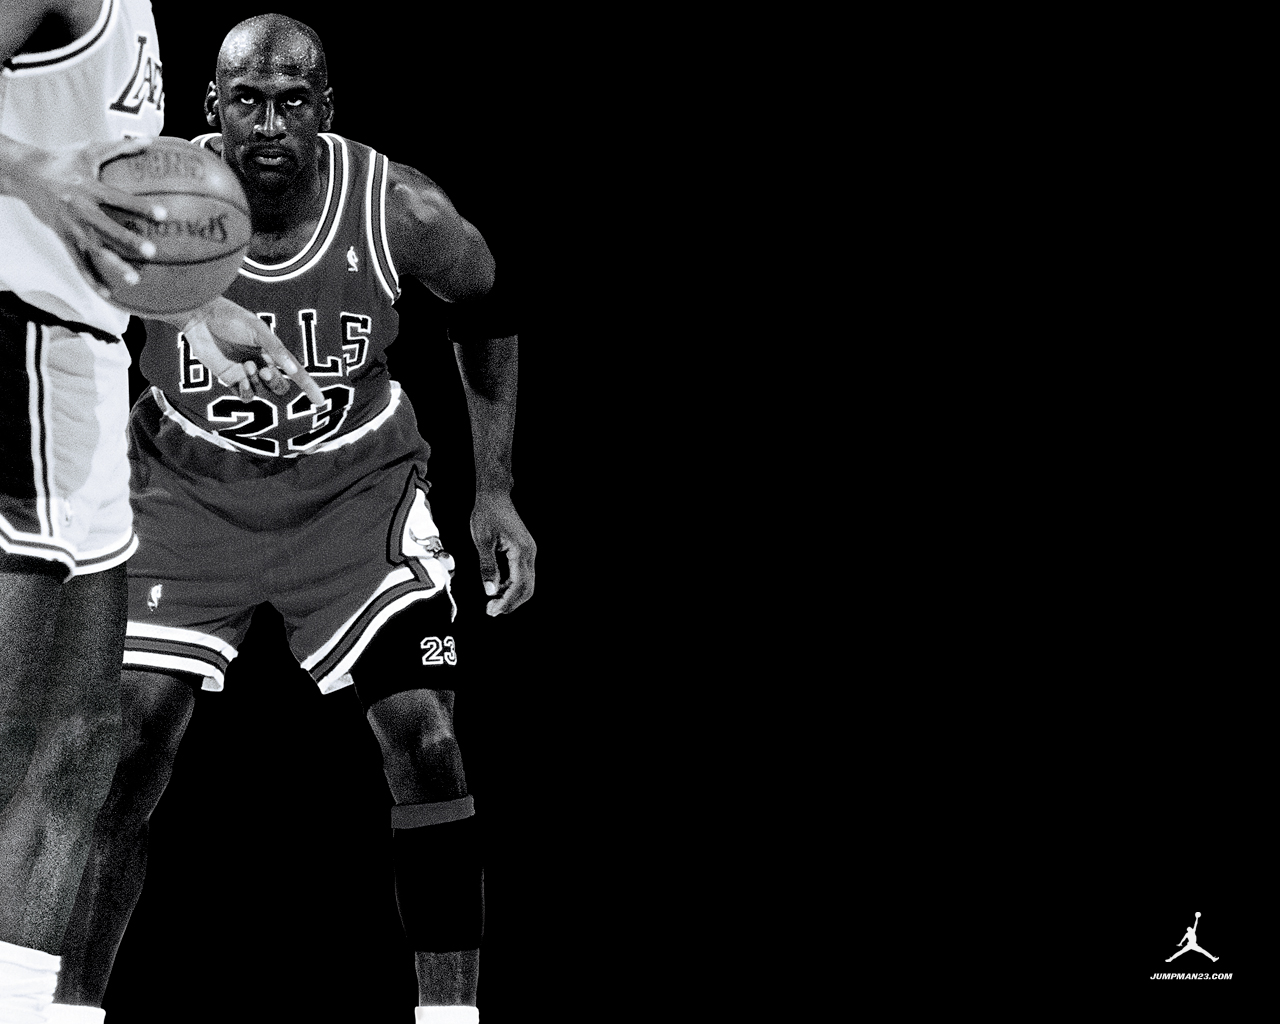 jordan hd wallpapers michael jordan hd wallpapers michael jordan 1280x1024